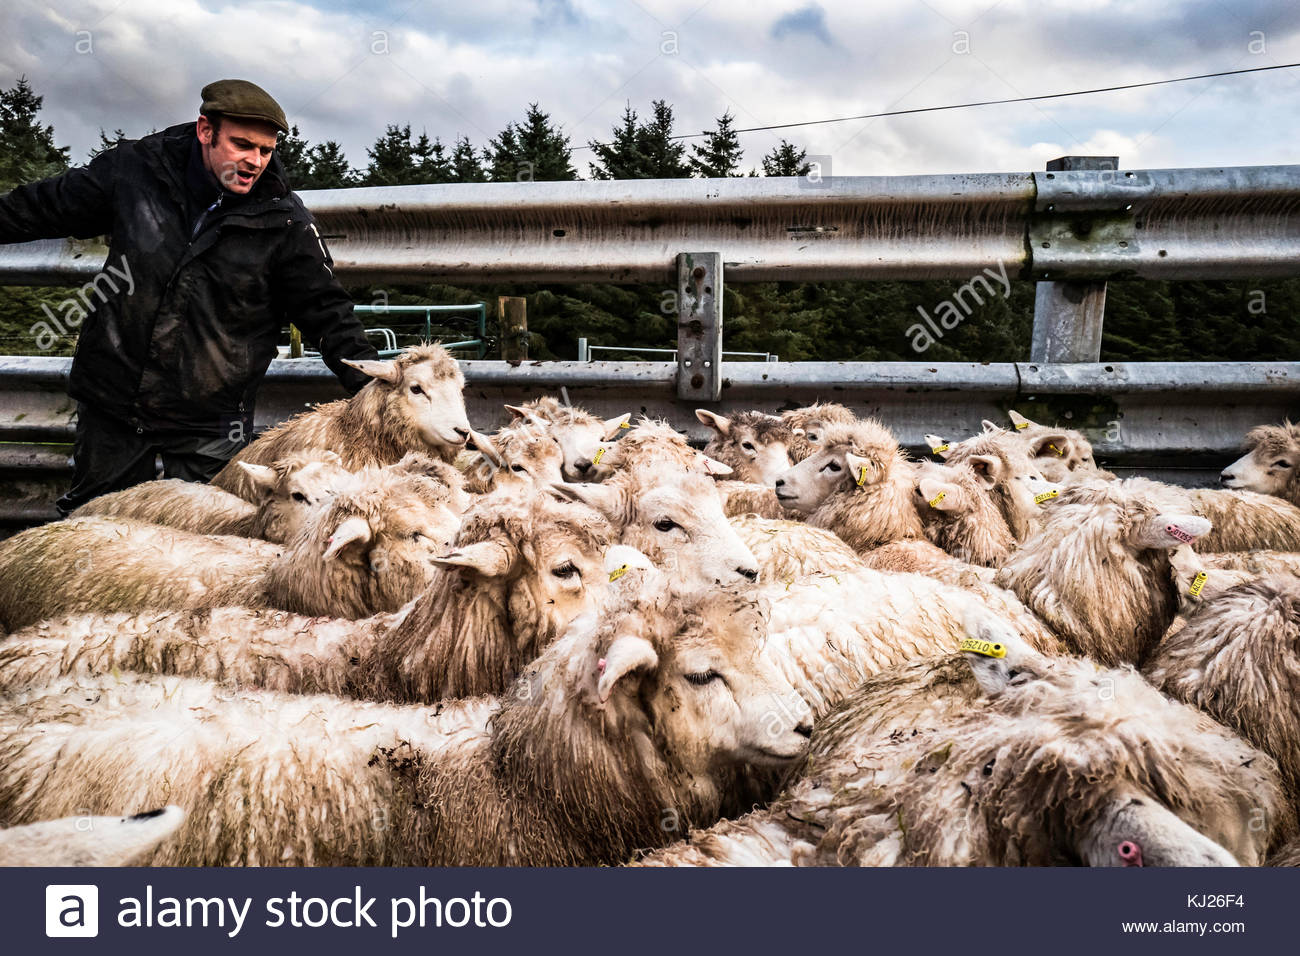 Towford, Jedburgh, Scottish Borders, UK. 21st November 2017. A flock of Romney sheep are moved to fresh grazing - Stock Image